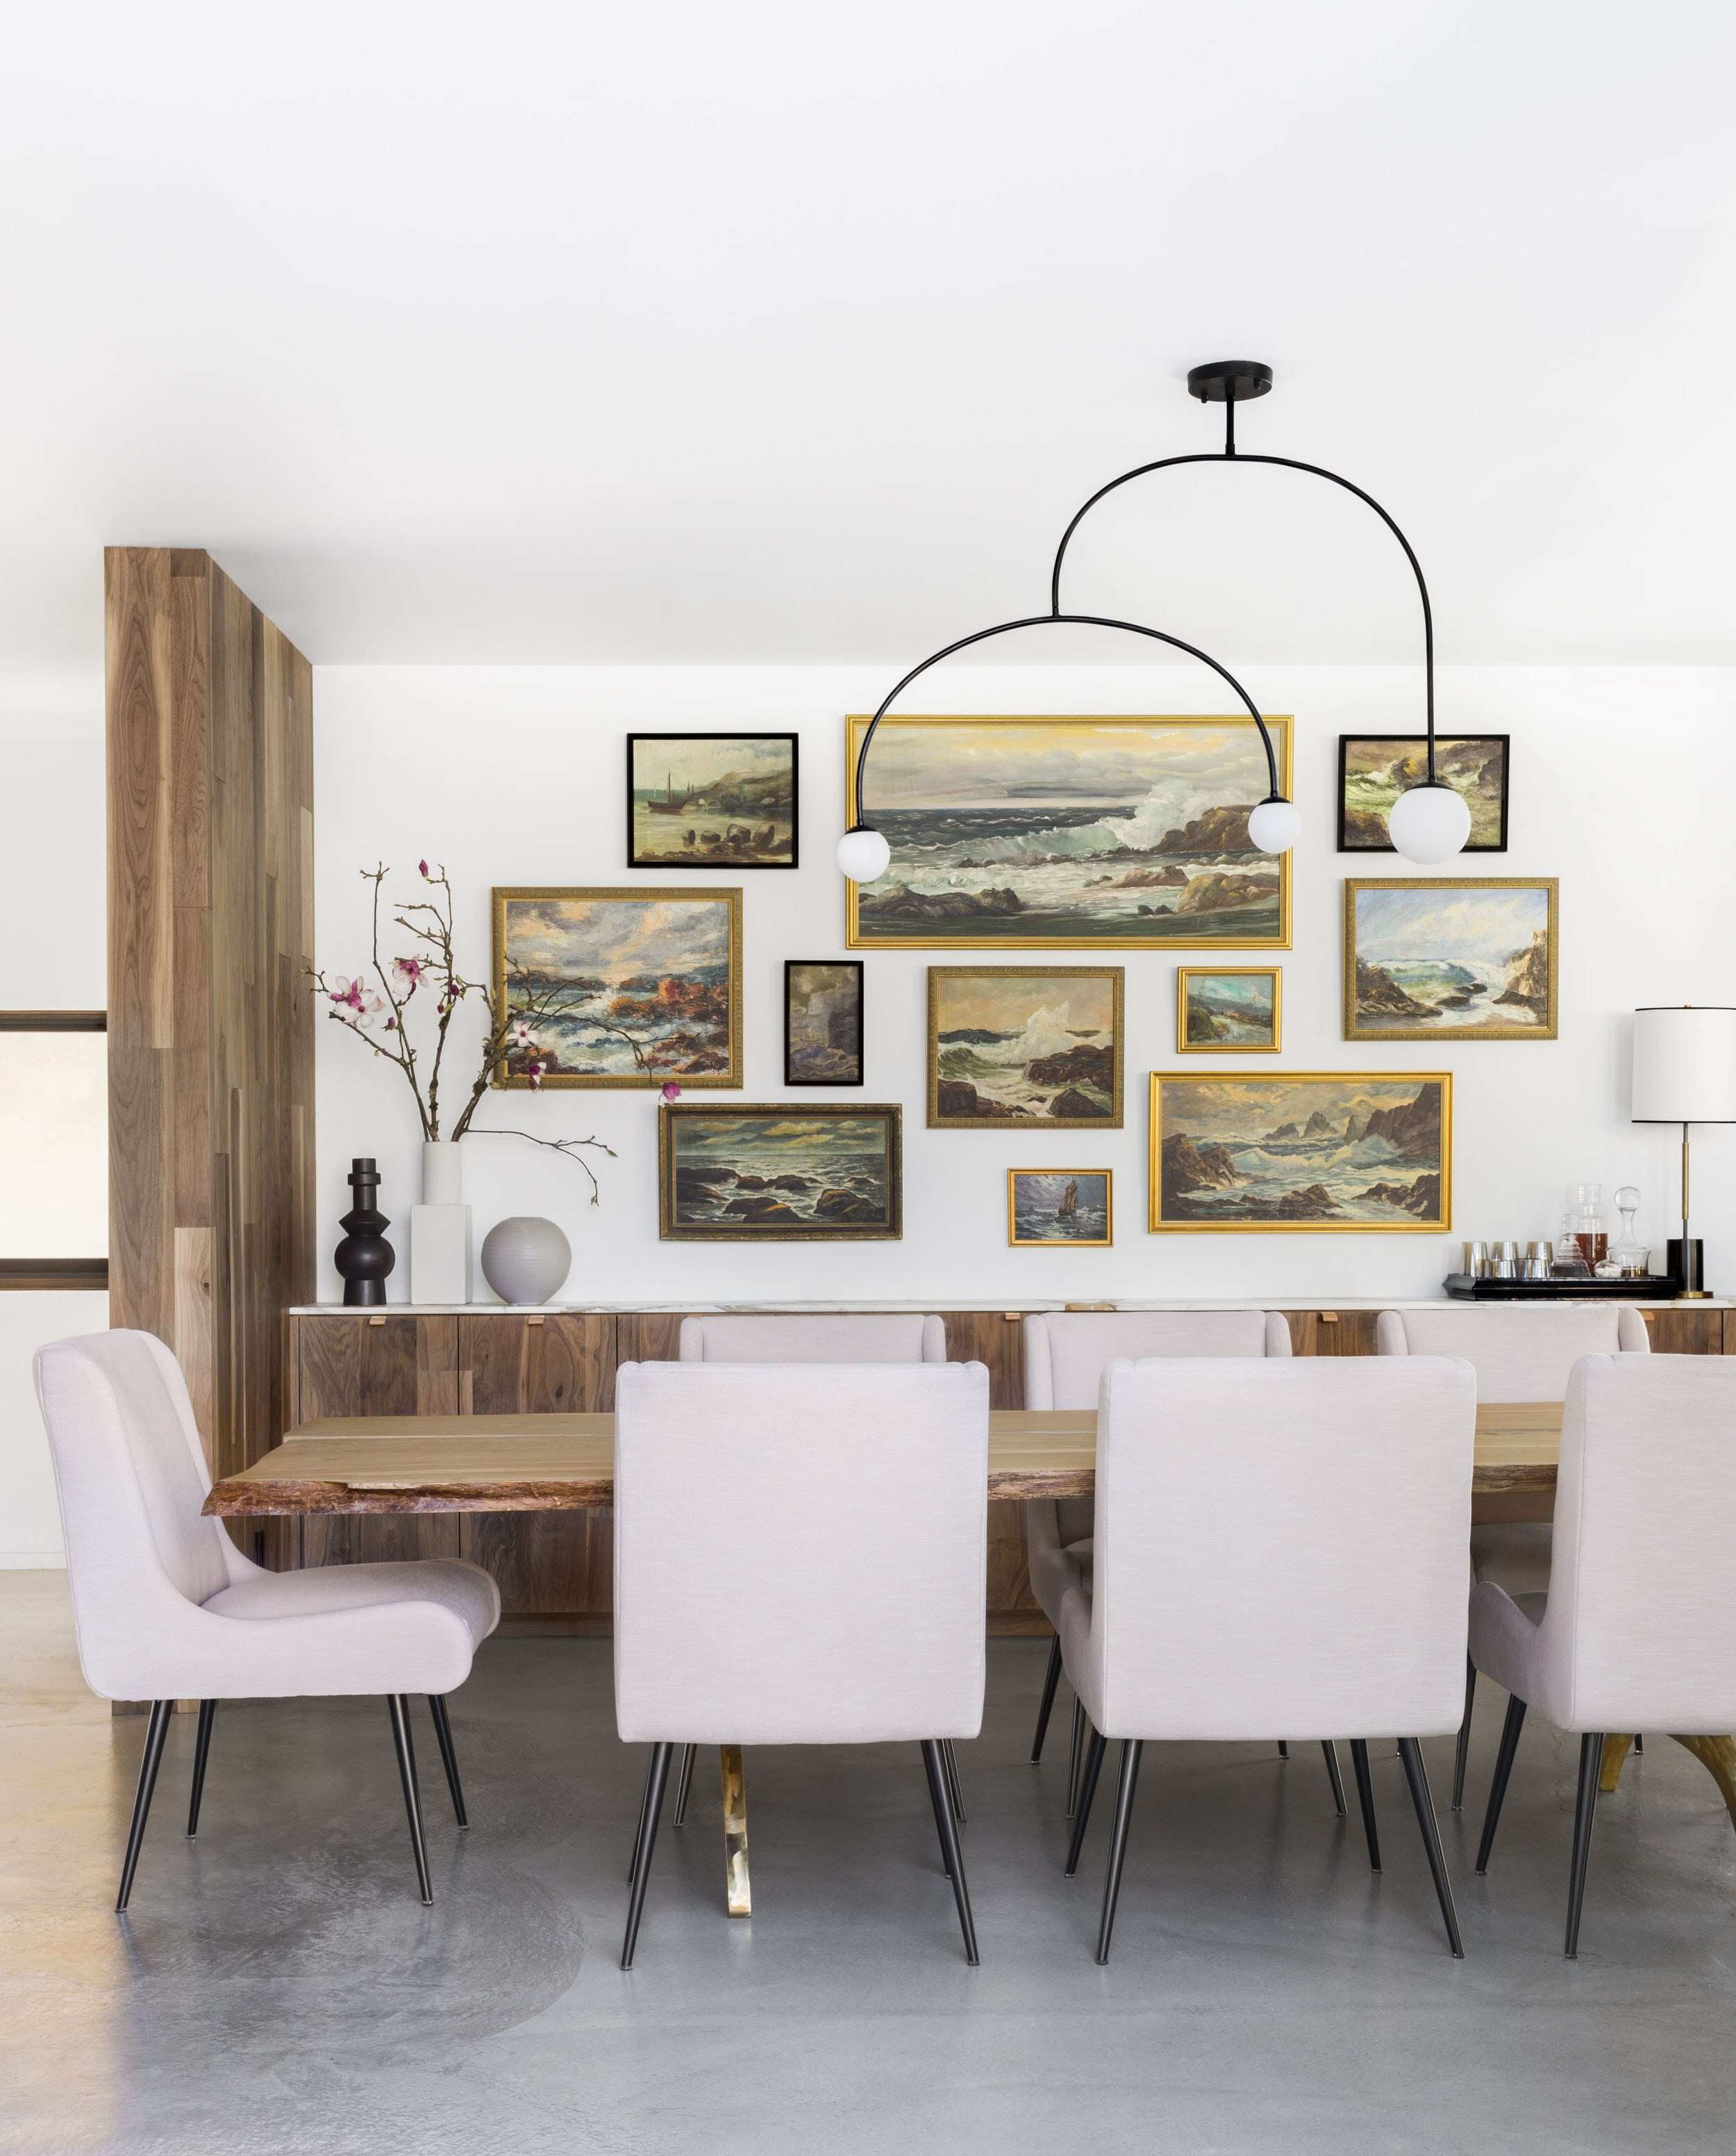 Why I love Mid Century Modern design thewittygrittylife